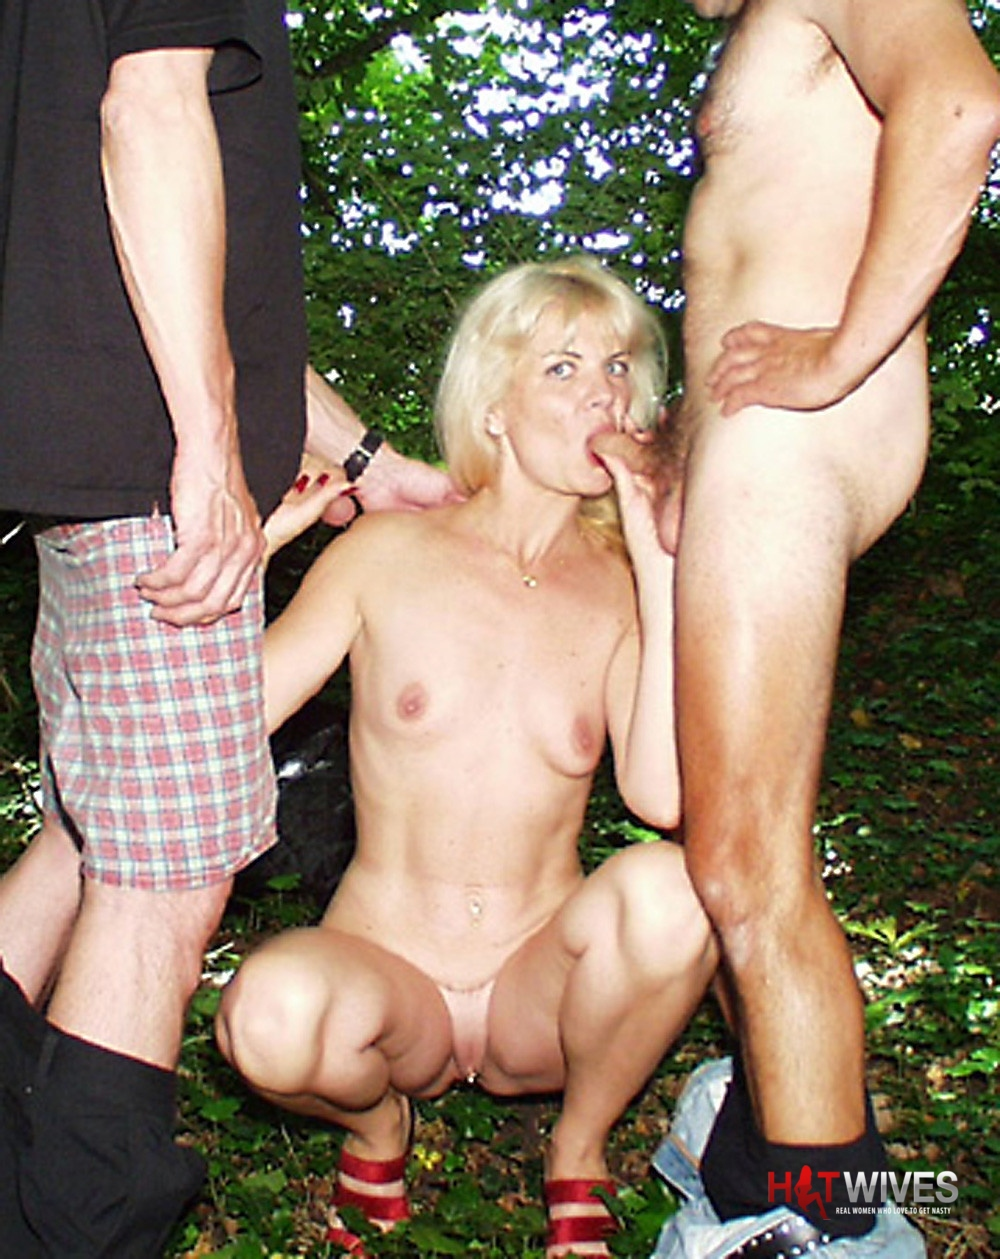 slut_outdoor_10.jpg